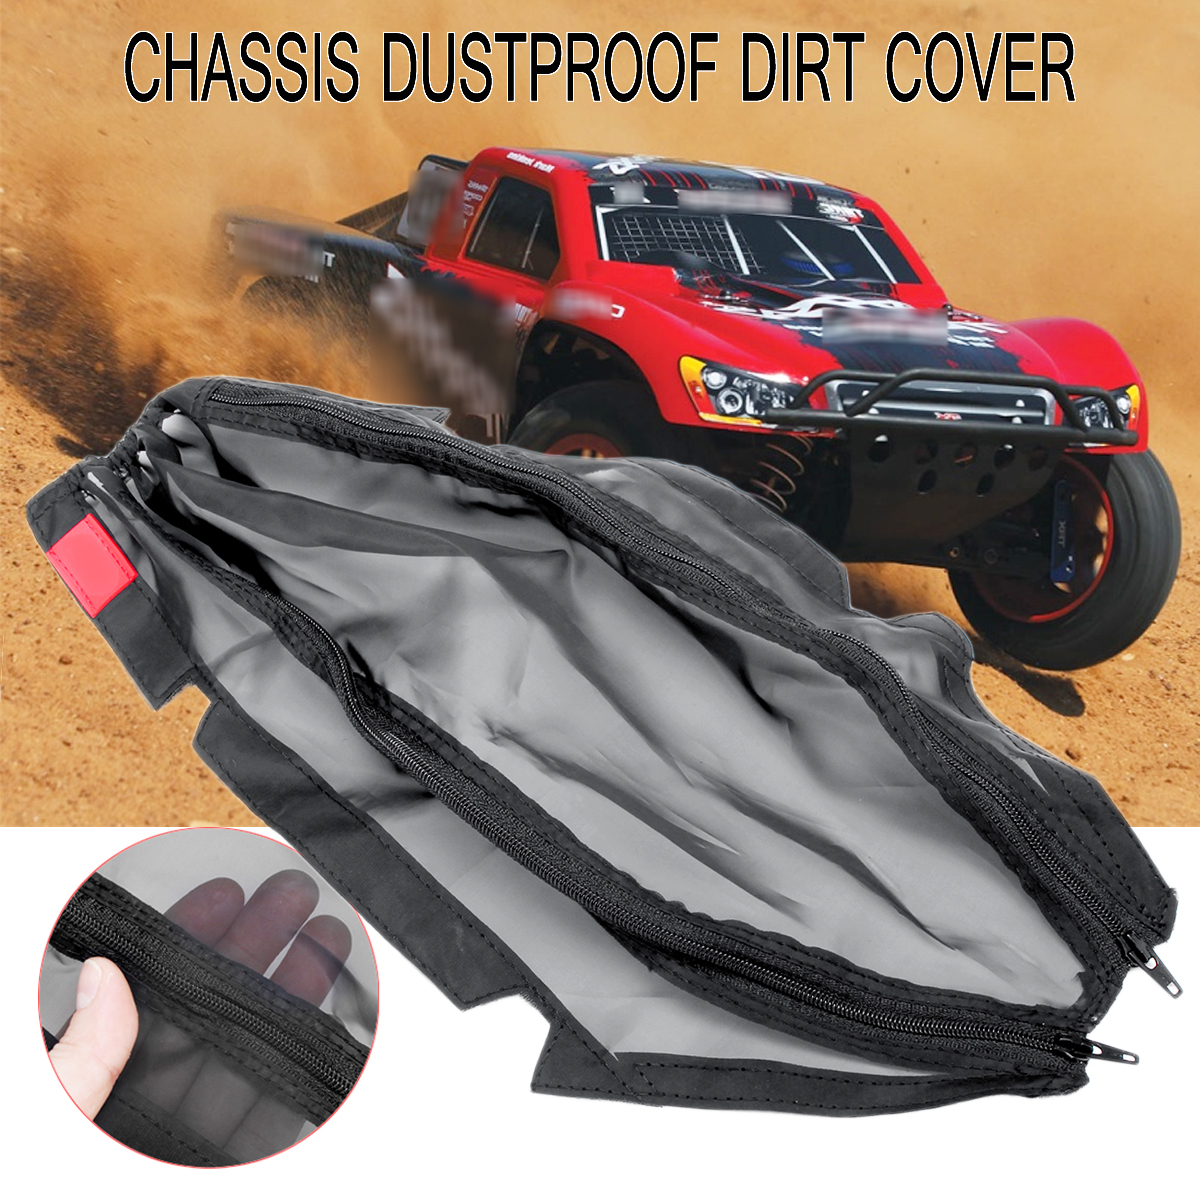 1//10 Rally Slash 4x4 LCG chassis dust resist dirt guard cover for Traxxas